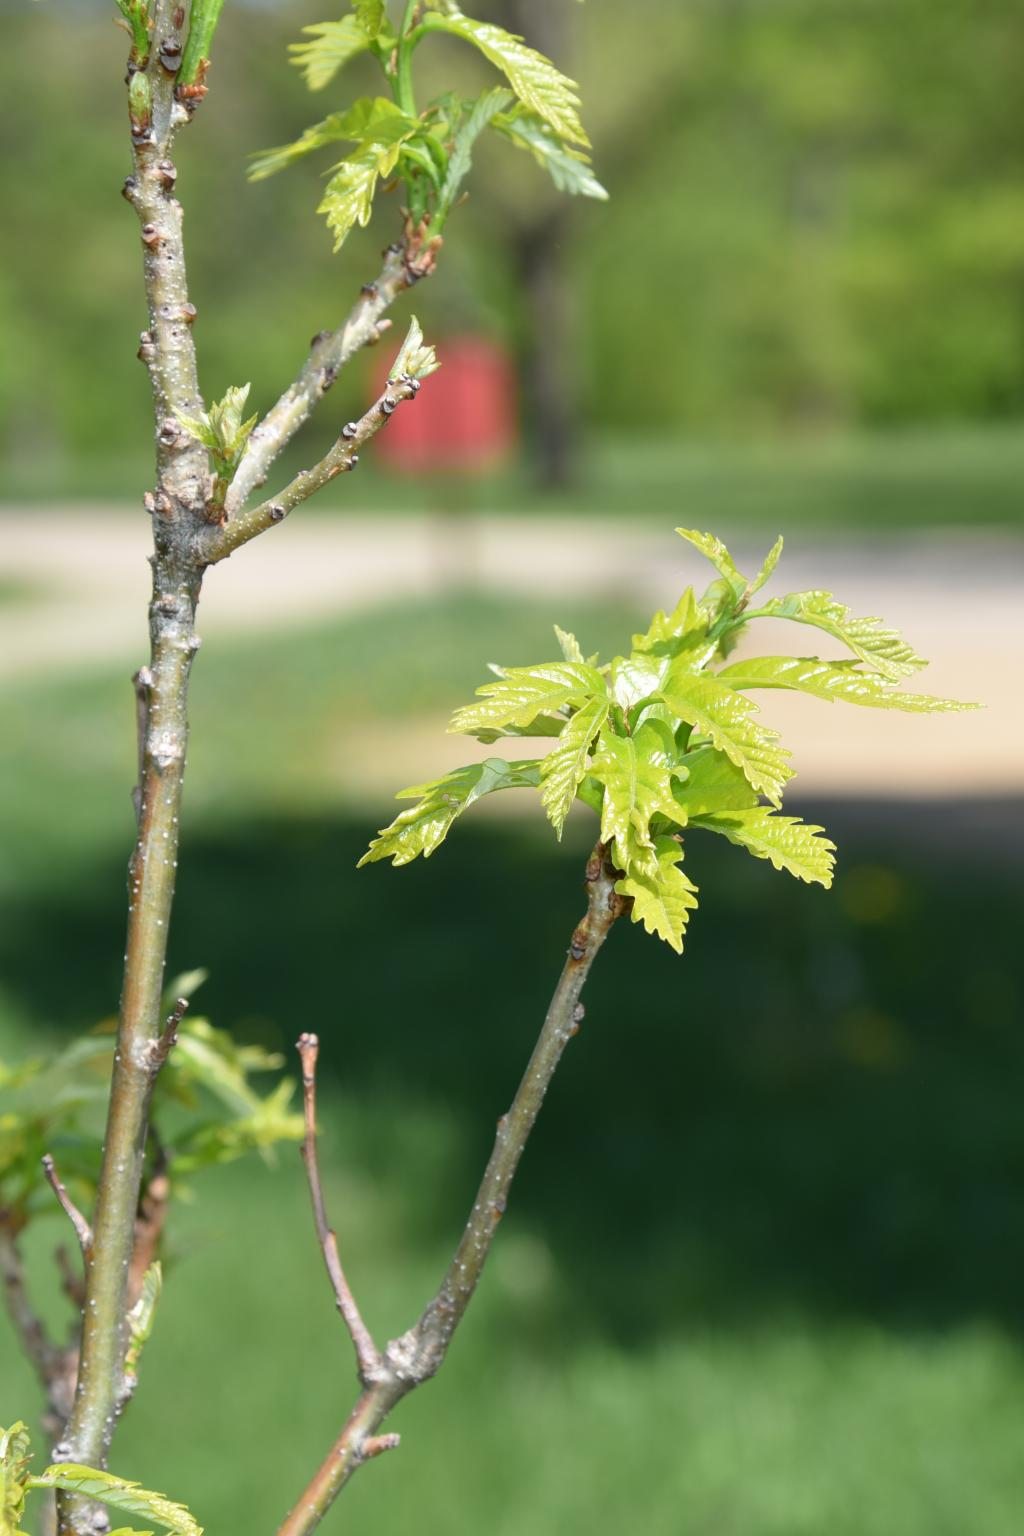 Quercus ×warei 'Nadler' PP 17604 (KINDRED SPIRIT™ Ware's Oak), bark, twig